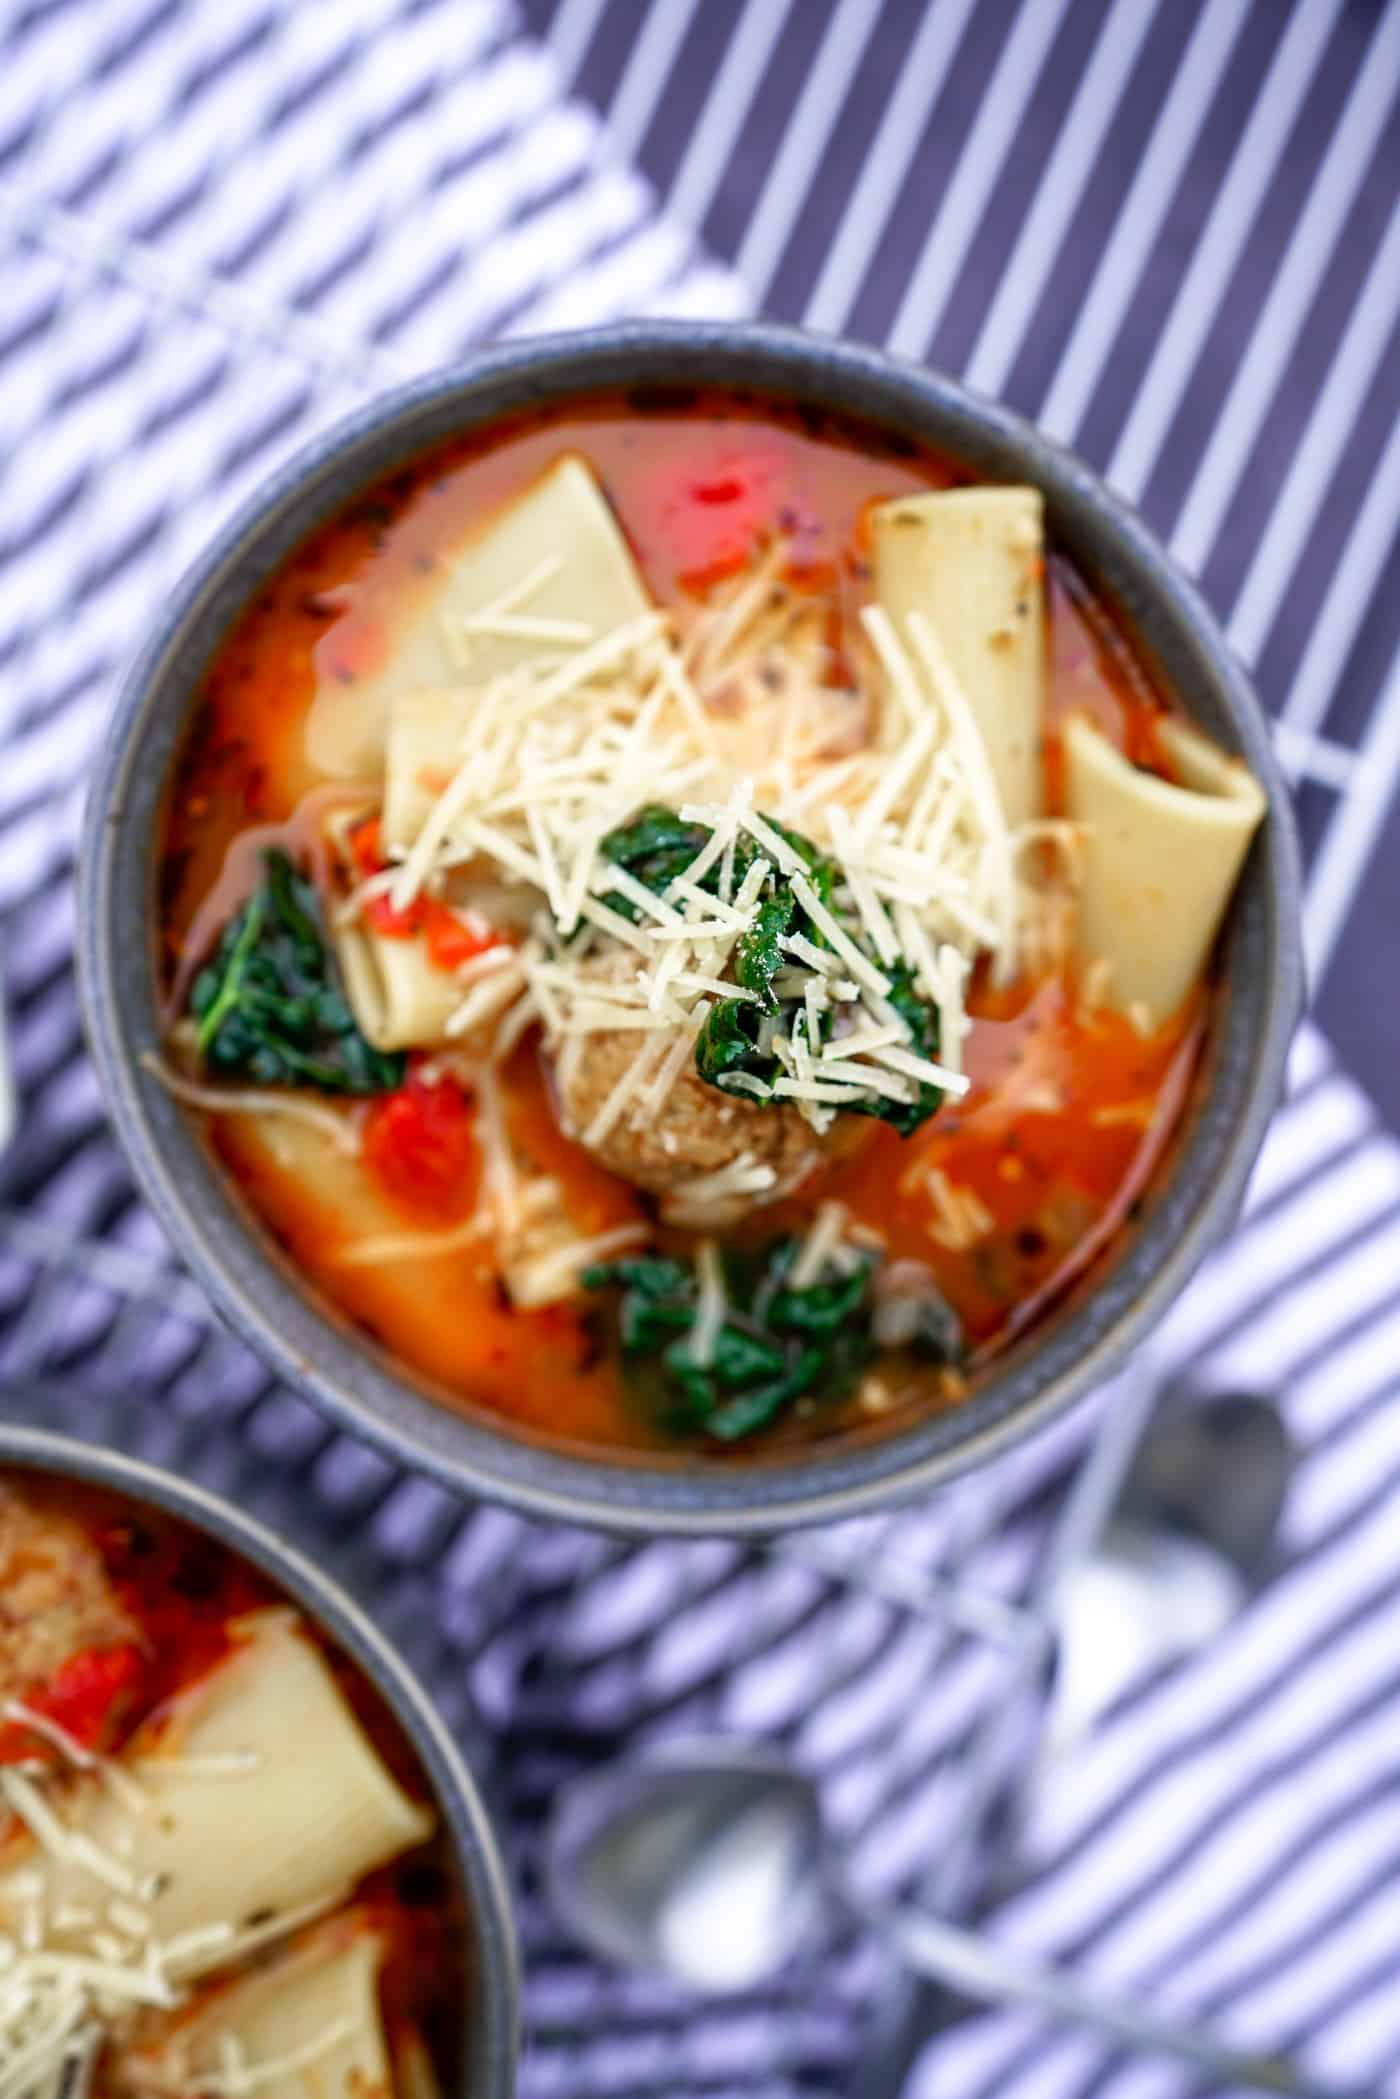 Another amazing soup in the Instant Pot! This rigatoni soup is packed with so much flavor, is easy dinner soup recipe and can be made for the meat lovers and vegans alike! Did we mention this Instant Pot rigatoni soup is also keto-friendly meal?